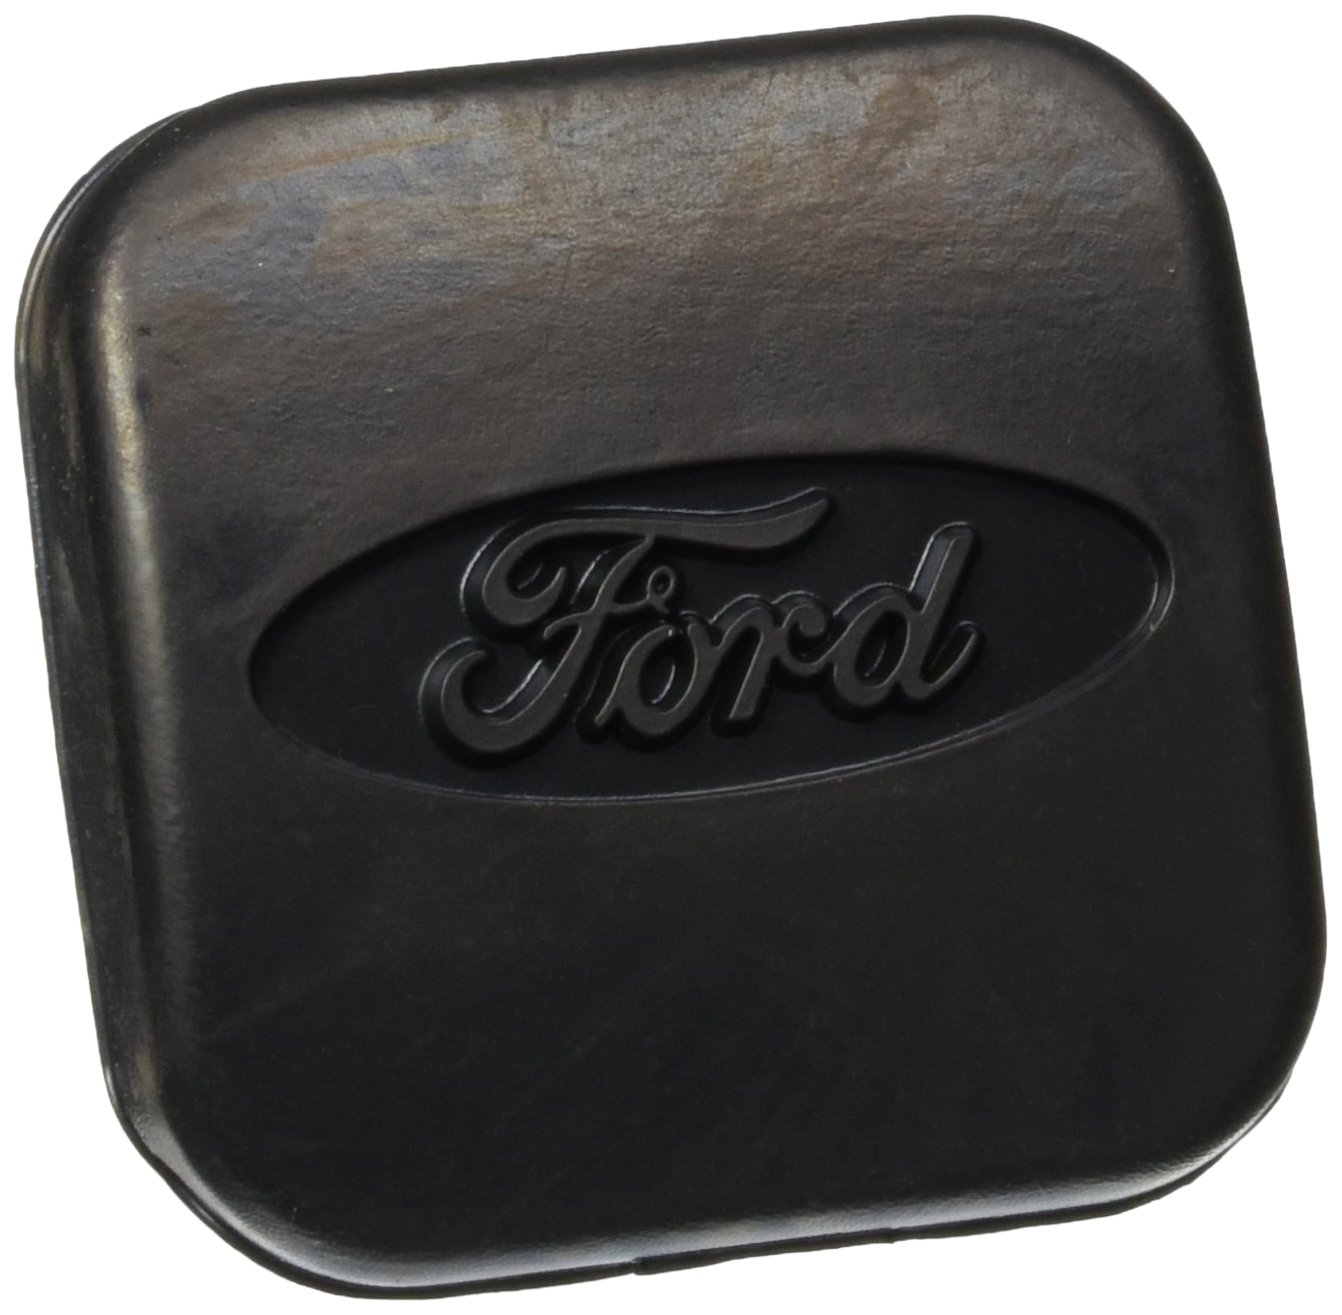 Ford Genuine 1L2Z-17F000-CA Trailer Hitch Receiver Cover Cap by Ford